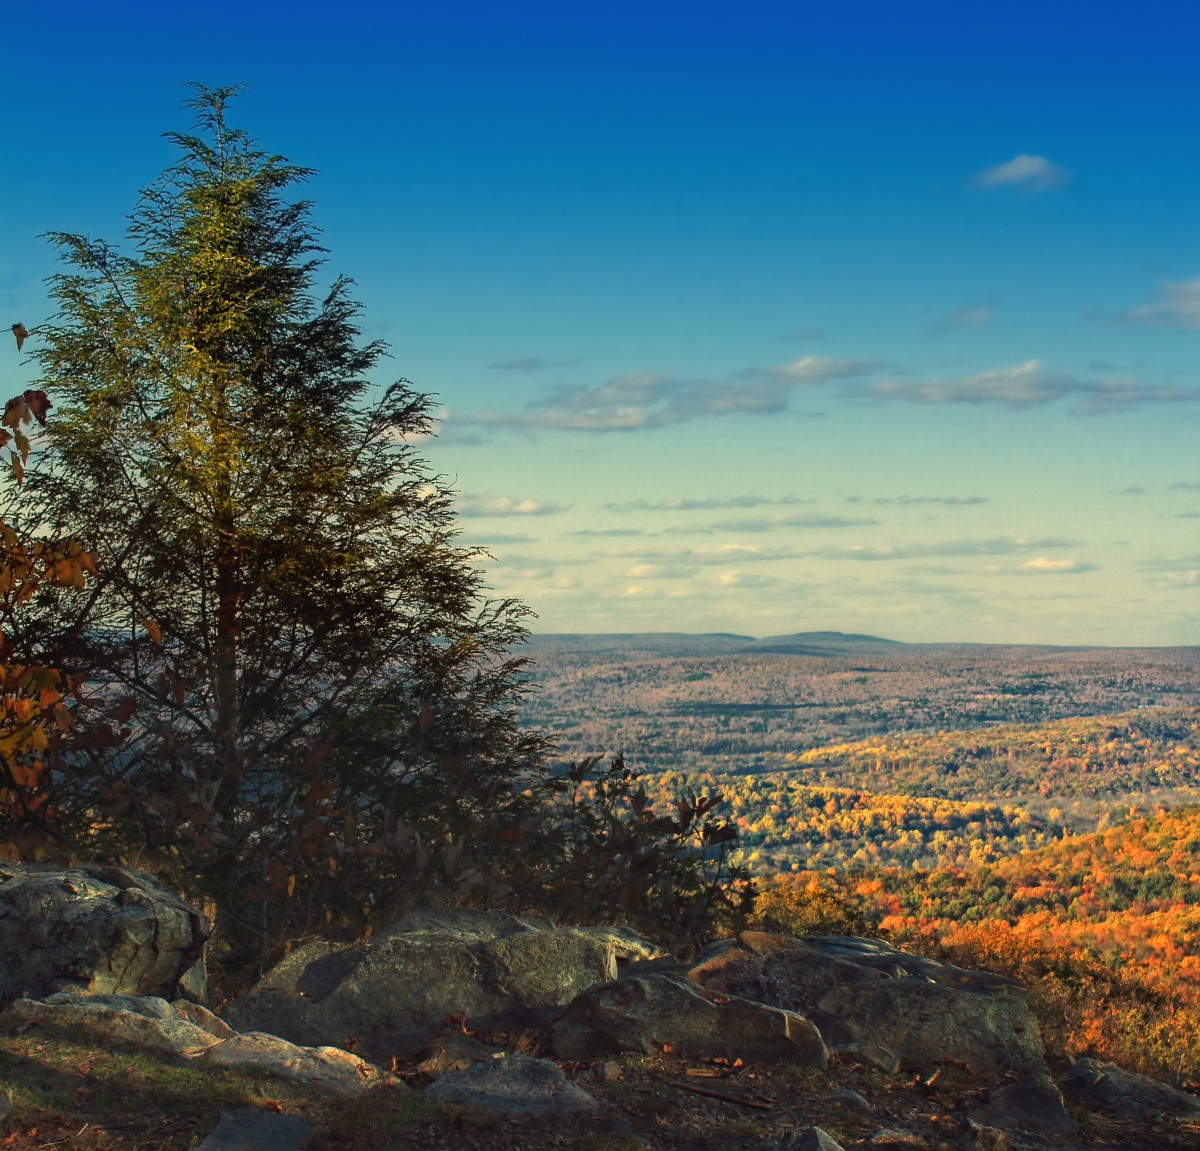 A view from the Appalachian Trail